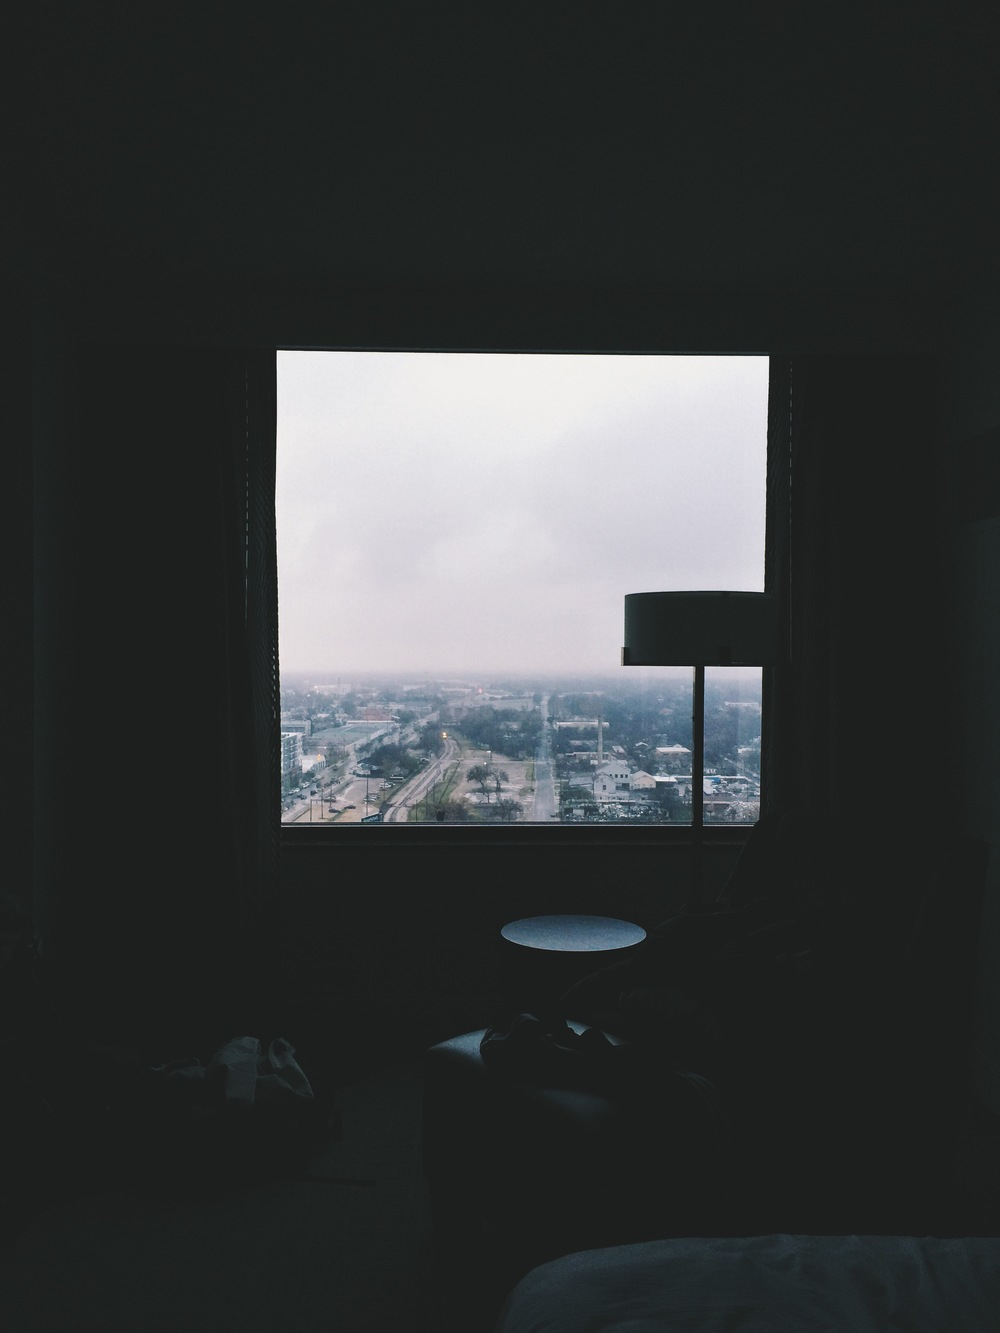 {inside looking out from our hotel room. wasn't much of a view, but the fog was nice this day.}